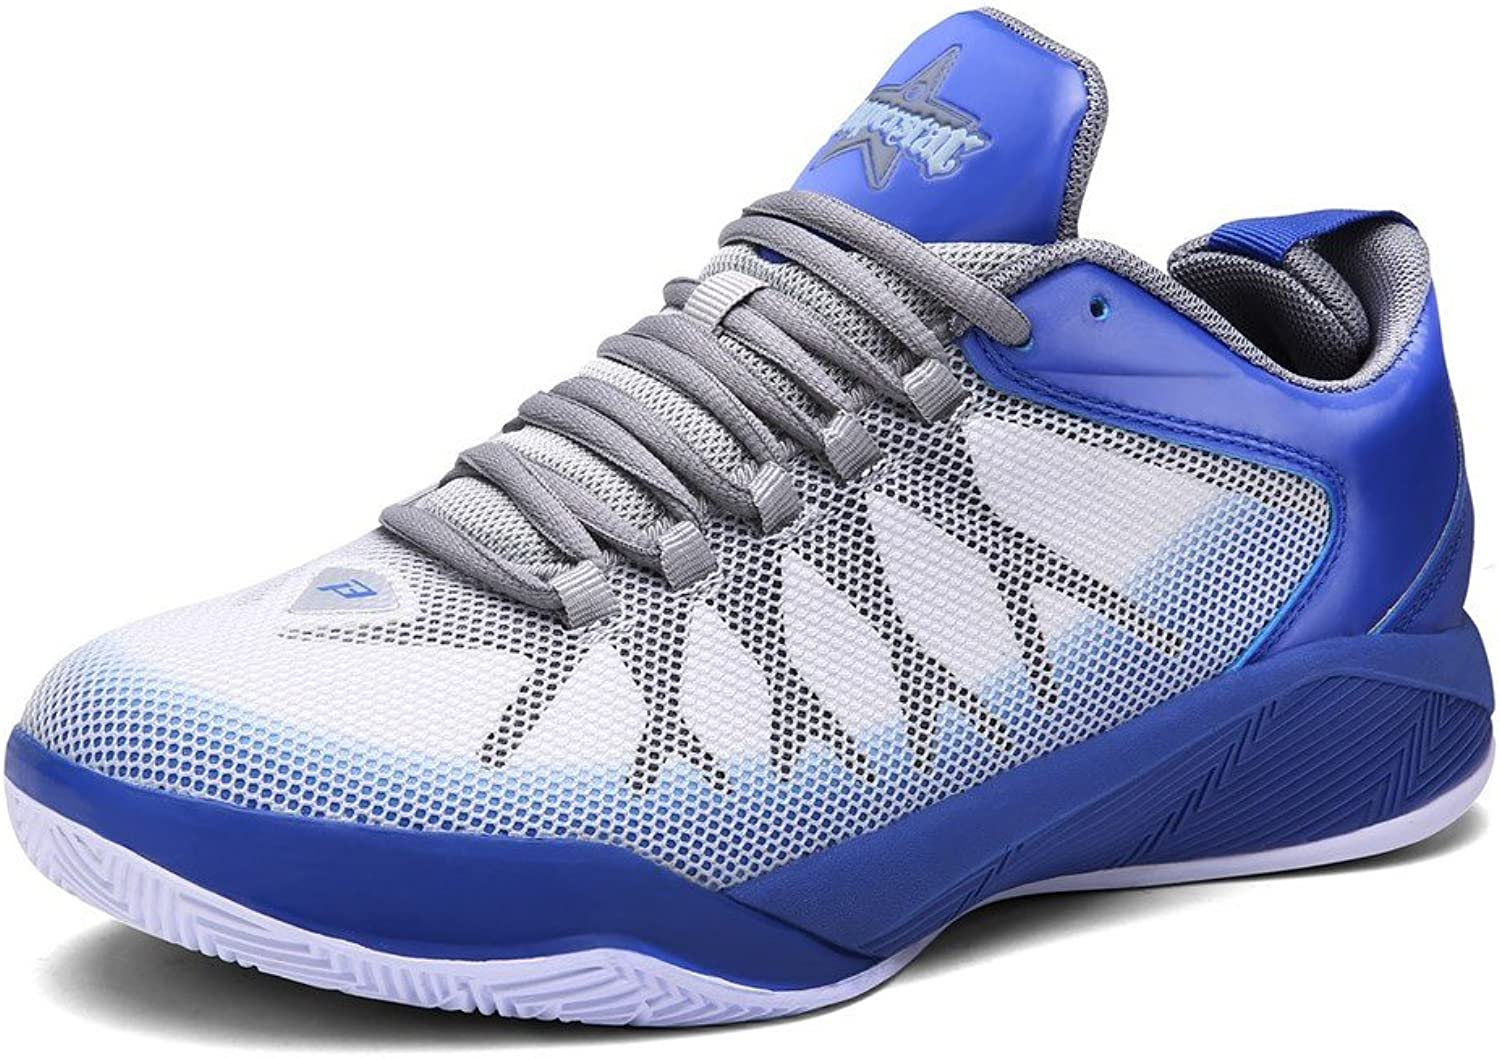 BAGE Men's Hyperdunk Running shoes Fashion Sneakers Basketball shoes